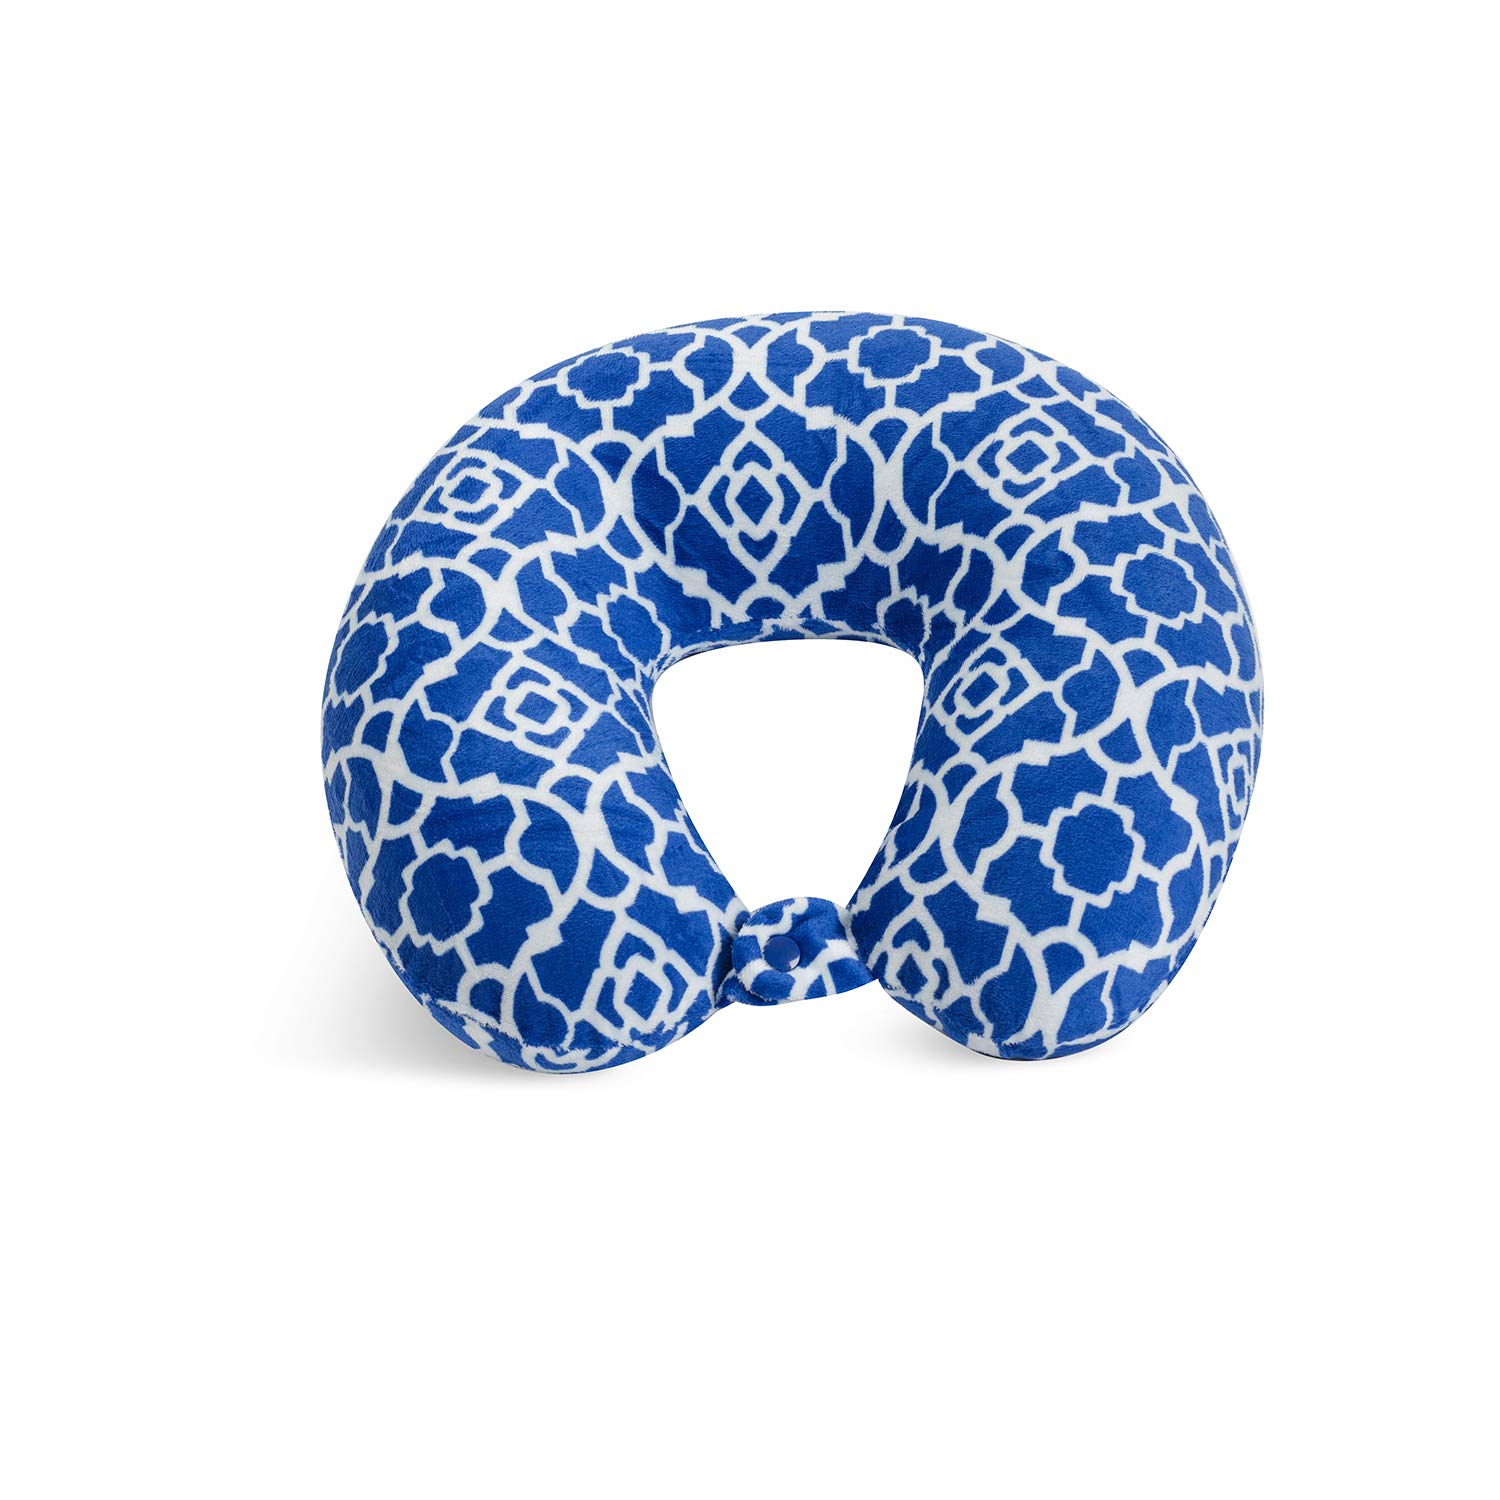 World's Best Feather Soft Microfiber Neck Pillow, Cobalt Blue Trellis, Neck-Supportive Travel Pillow by World's Best (Image #1)